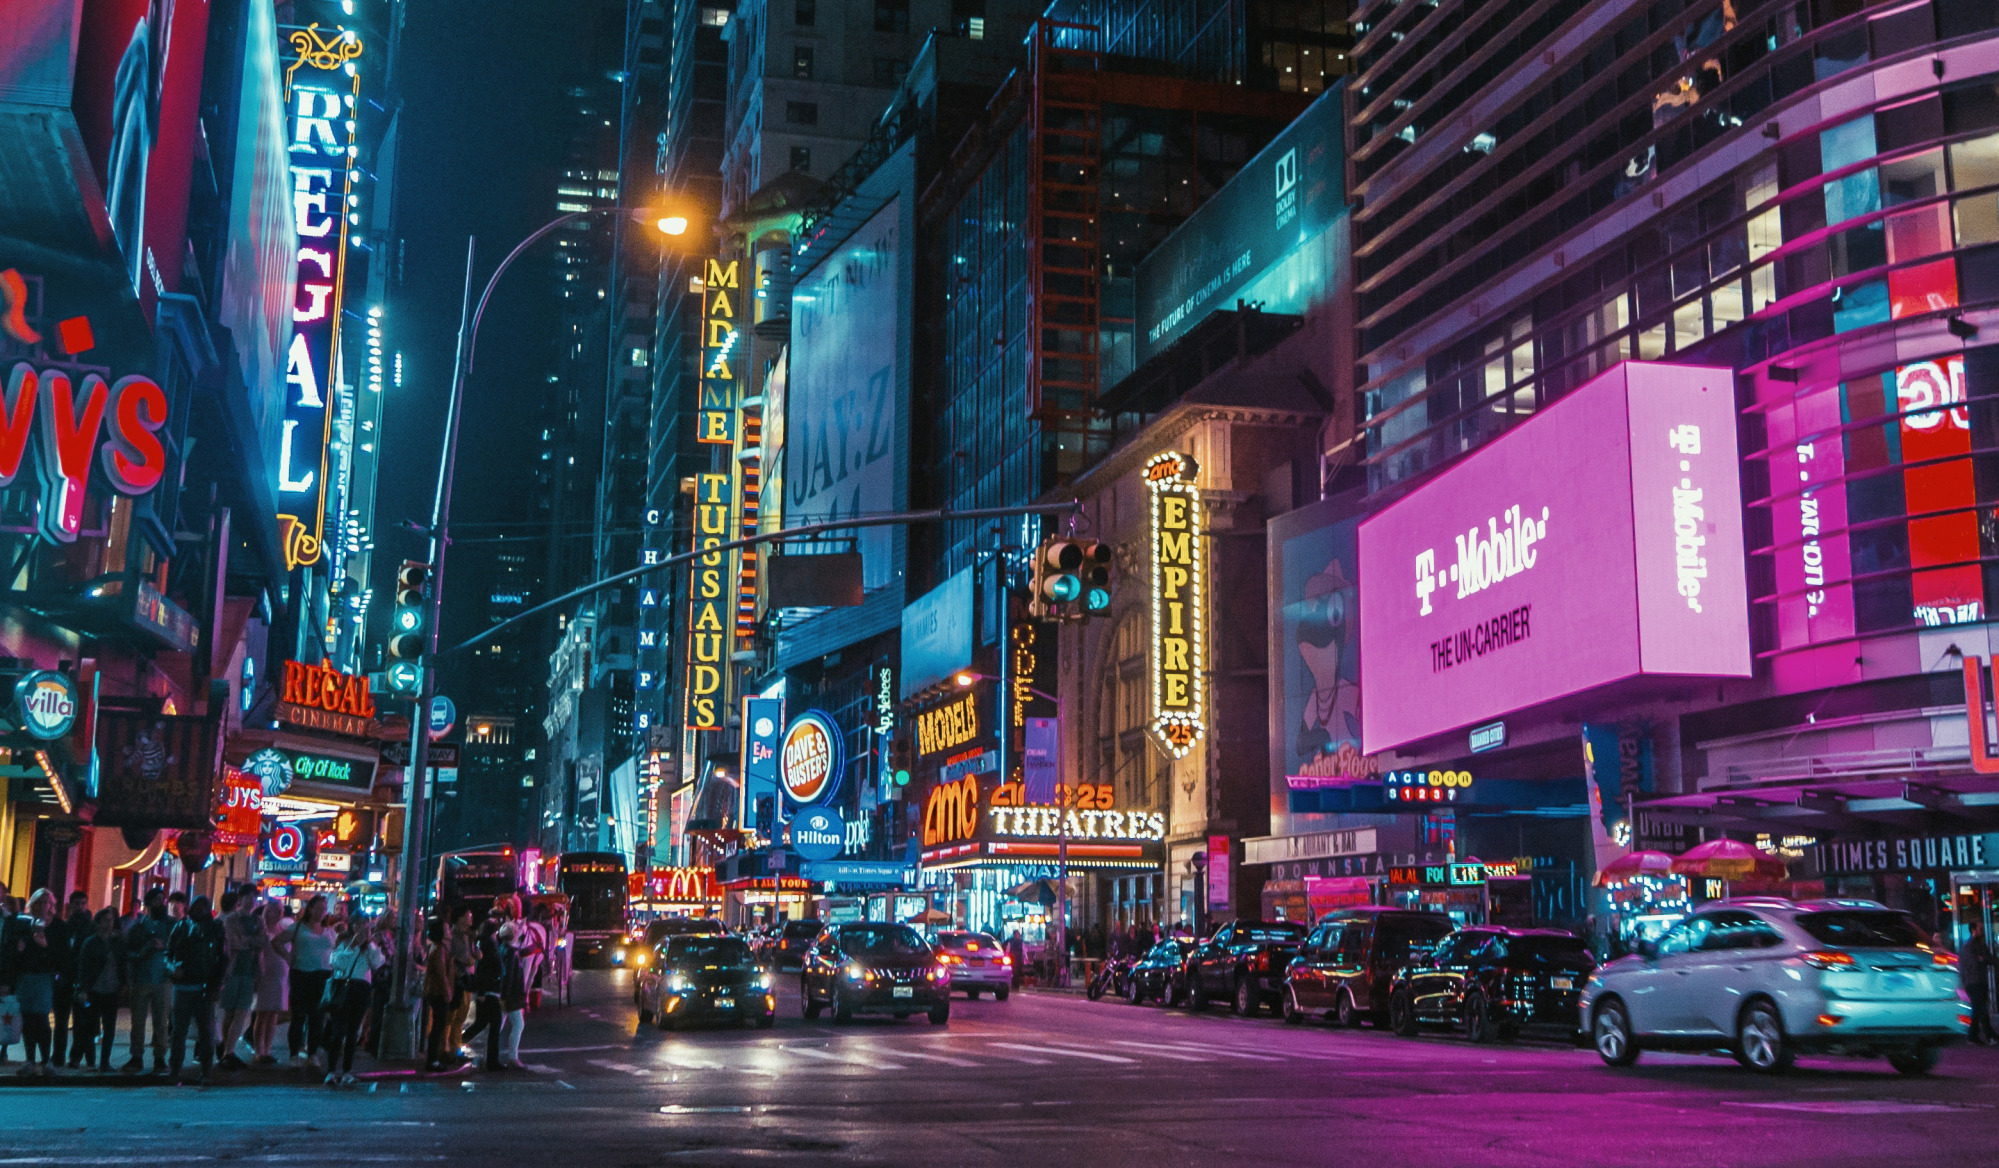 Times Square Is Having Trouble Hanging On to Office Workers - Bloomberg